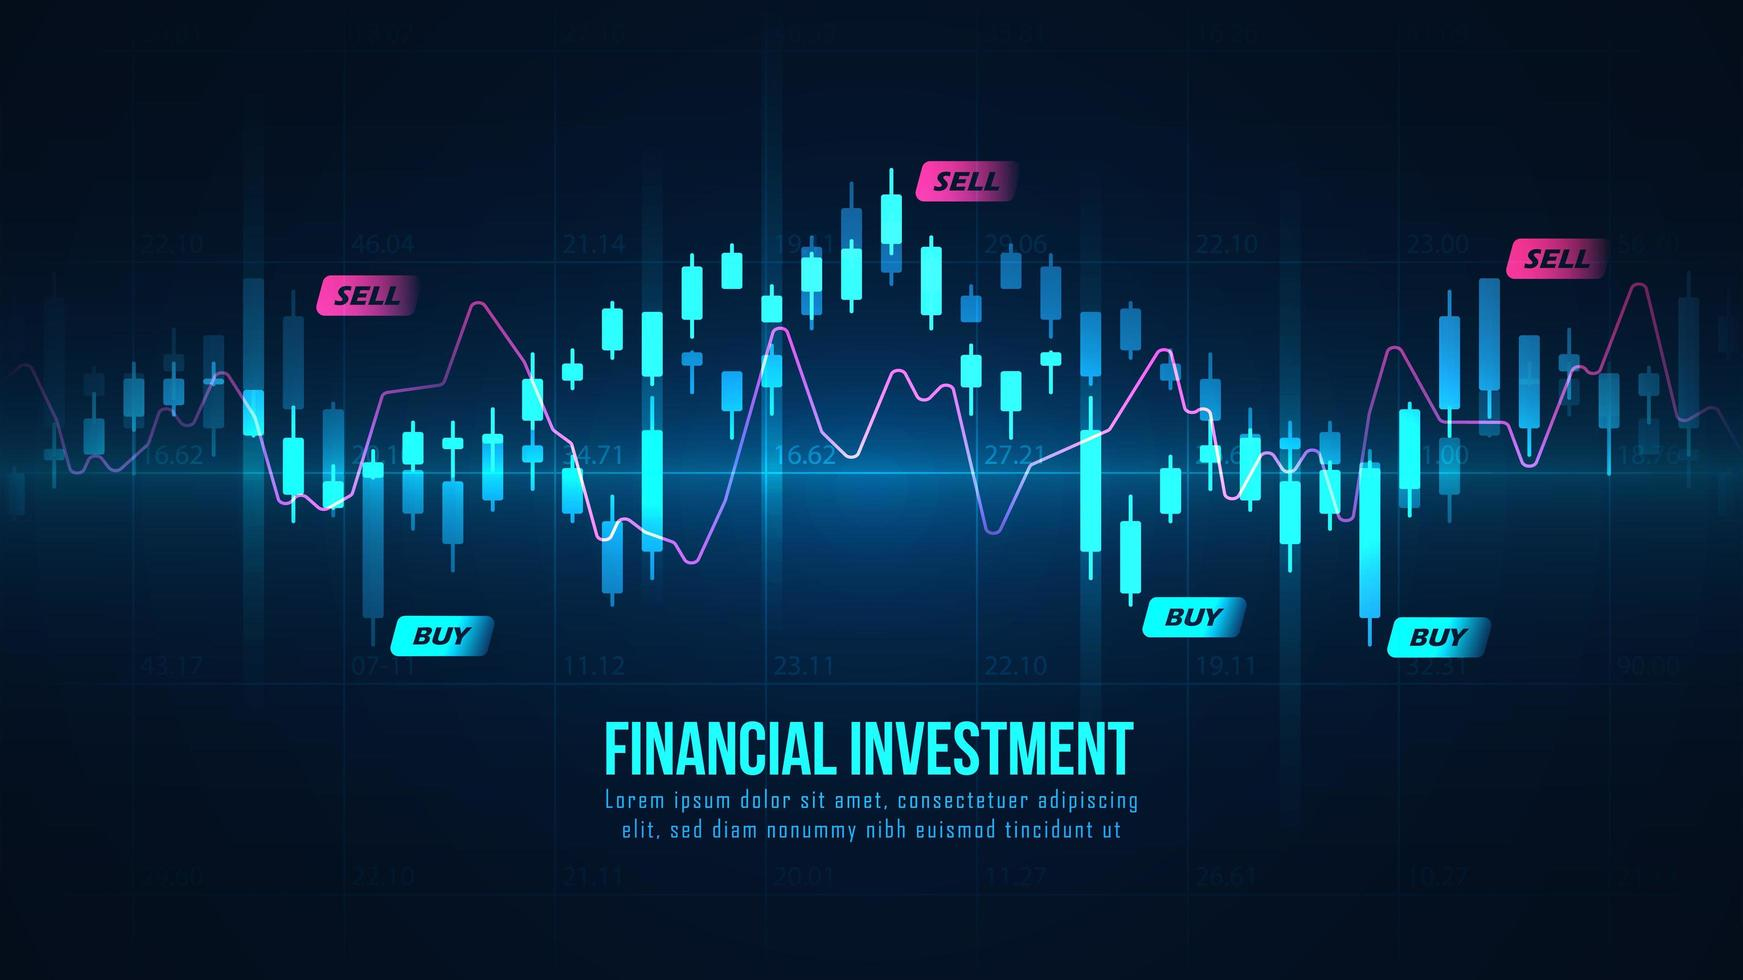 Stock market forex trading glowing graph 1228037 Vector Art at Vecteezy